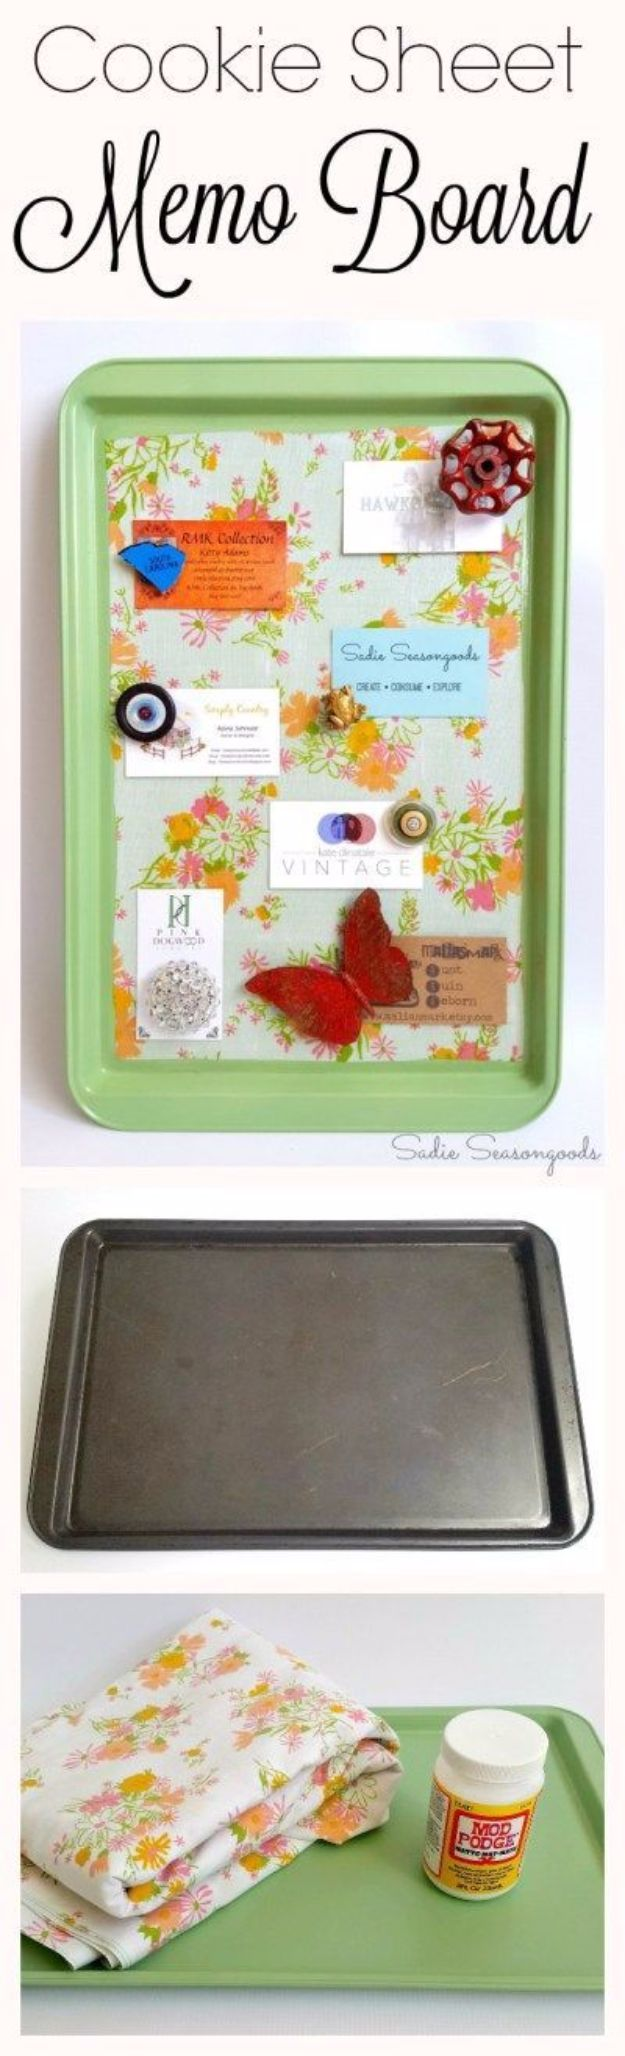 Country Crafts to Make And Sell - Cookie Sheet Magnetic Memo Board - Easy DIY Home Decor and Rustic Craft Ideas - Step by Step Farmhouse Decor To Make and Sell on Etsy and at Craft Fairs - Tutorials and Instructions for Creative Ways to Make Money - Best Vintage Farmhouse DIY For Living Room, Bedroom, Walls and Gifts #craftstosell #countrycrafts #etsyideas